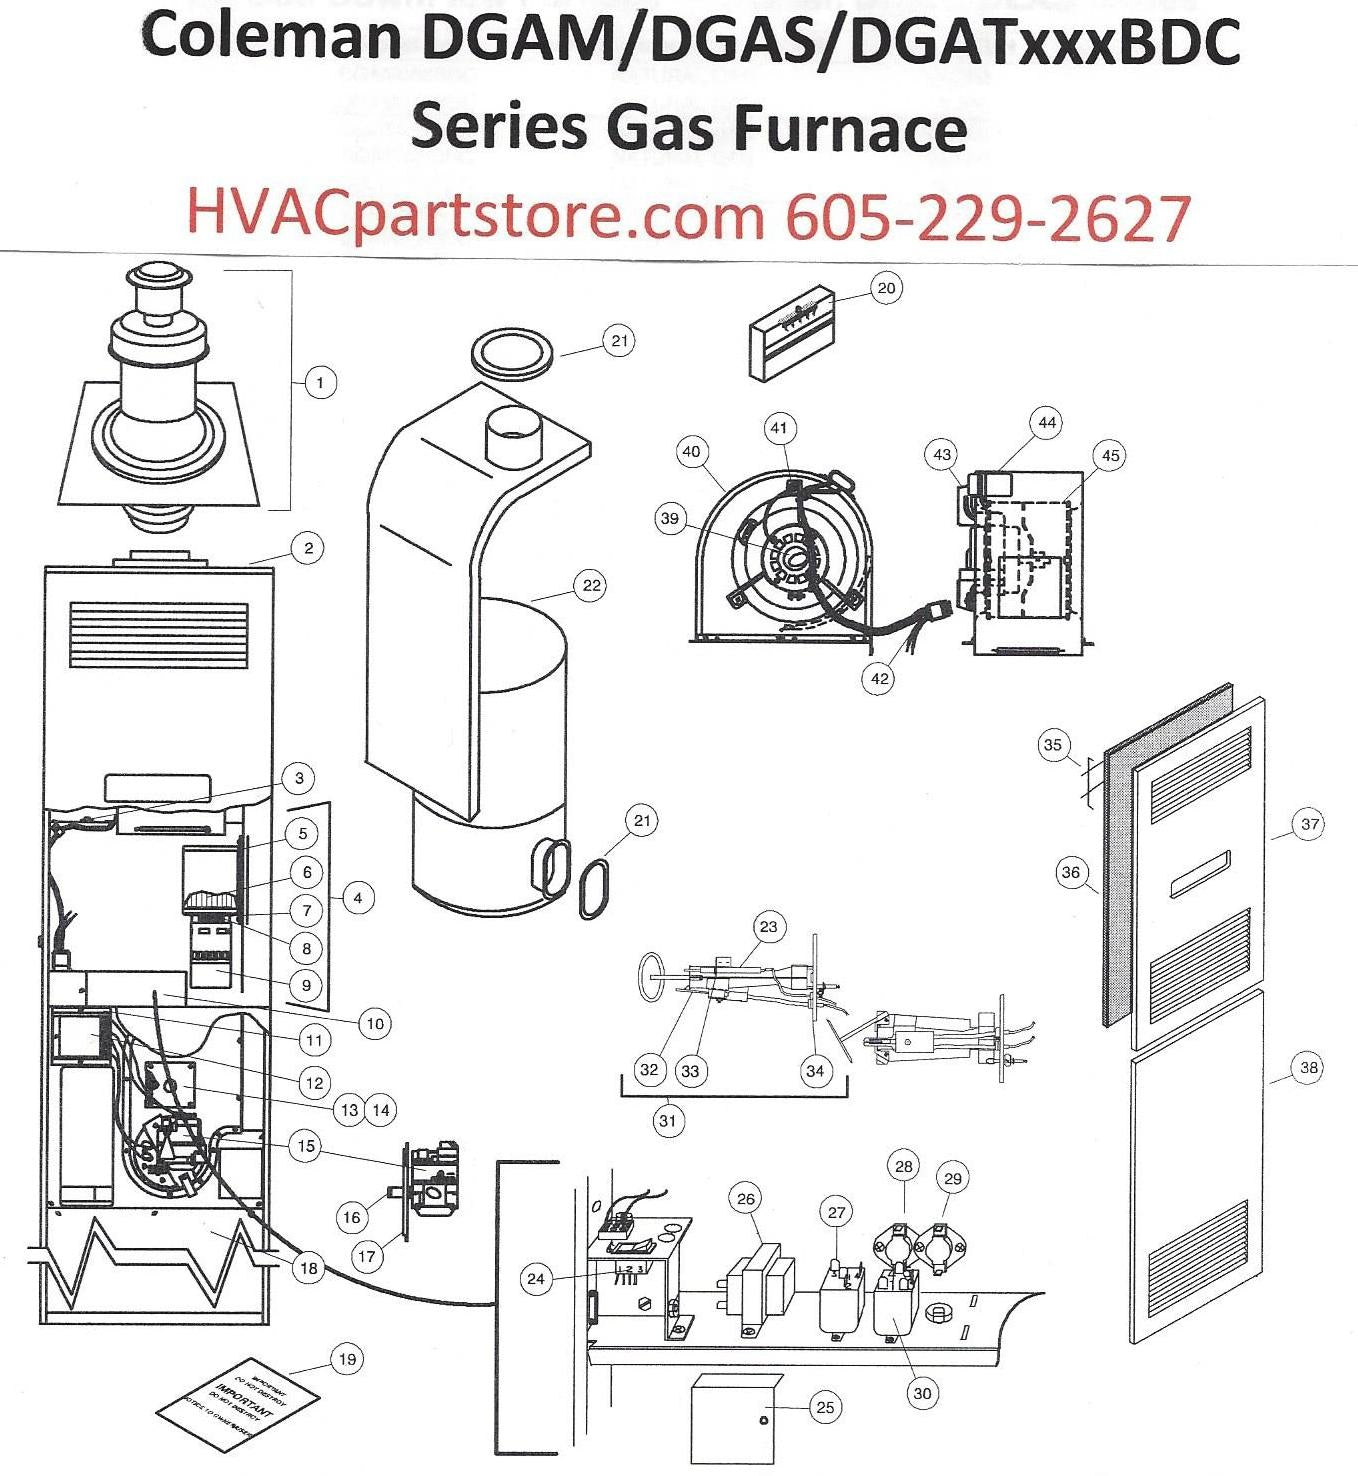 DGAXxxxBDCDiagram_716ed029 eb2f 45df 928e 316acc5b59fc?4545138671374011521 dgat056bdd coleman gas furnace parts hvacpartstore coleman furnace parts diagrams at reclaimingppi.co